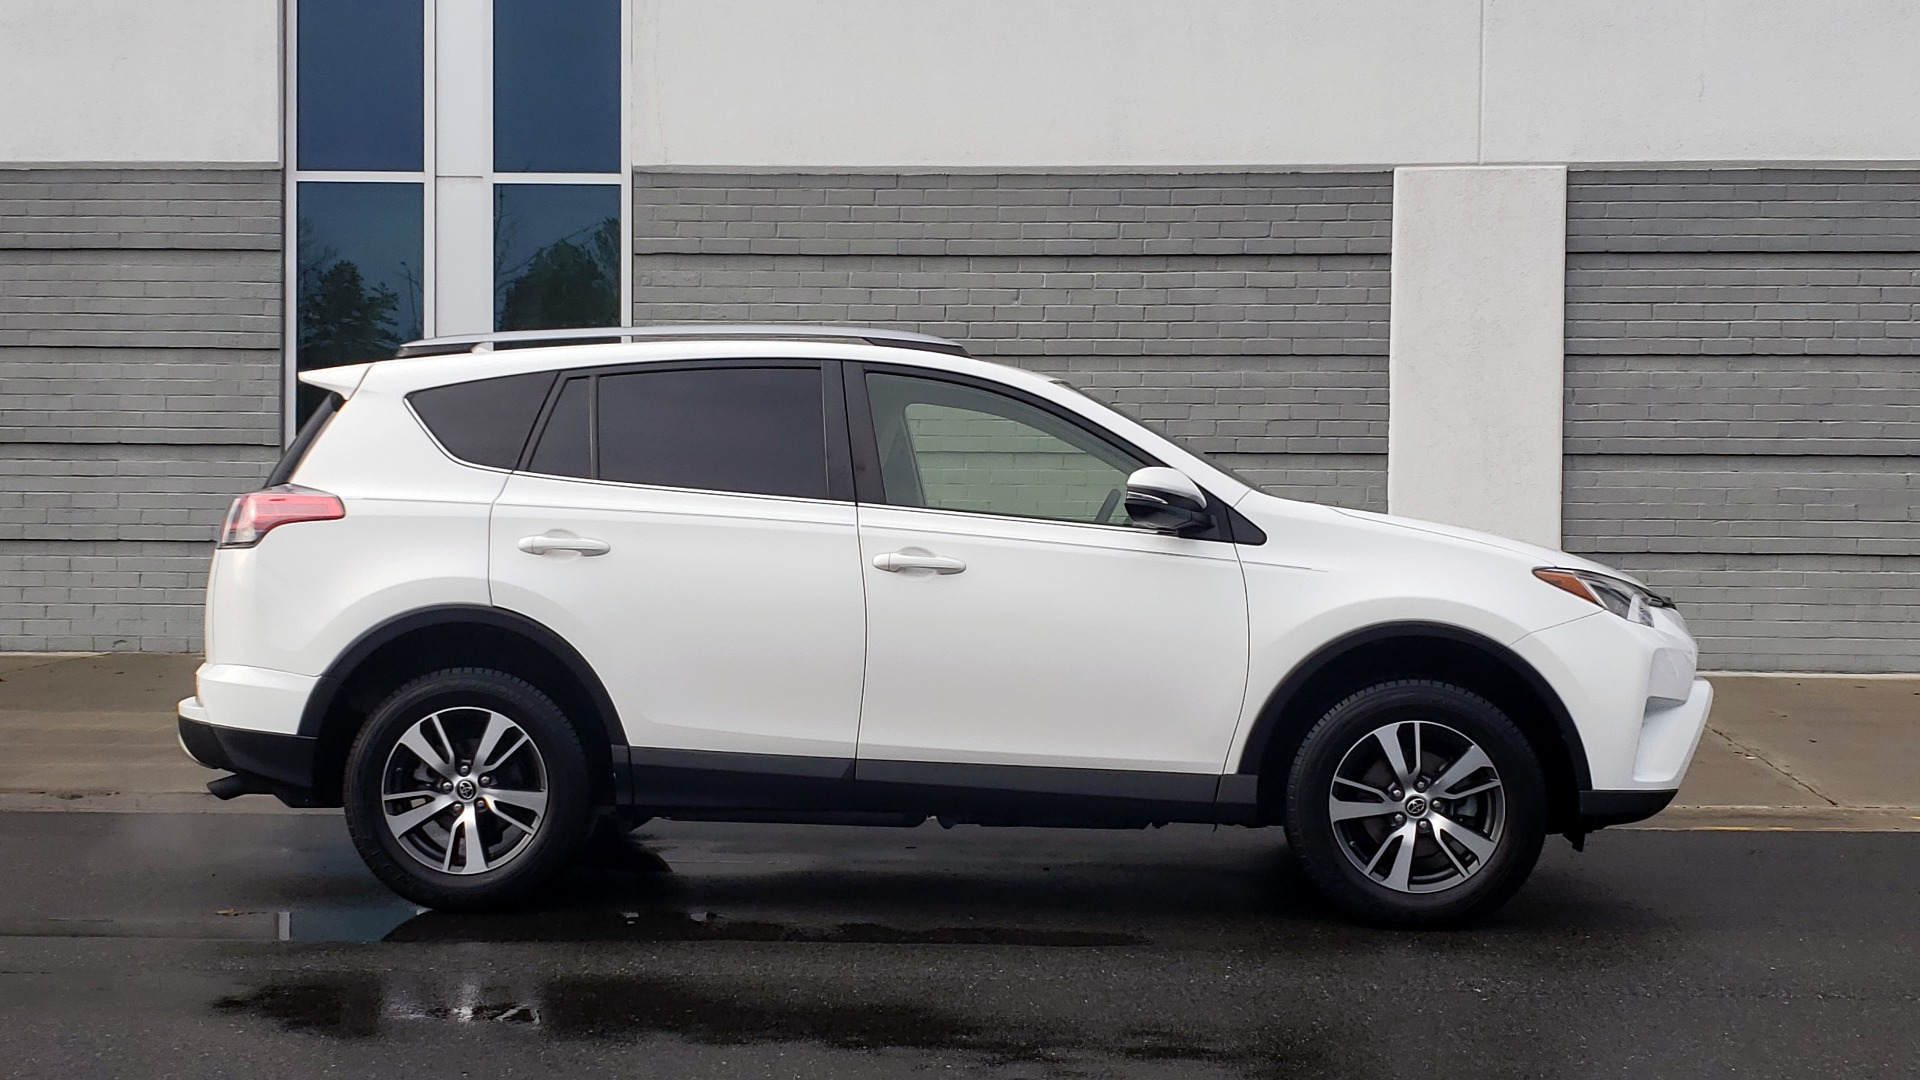 Used 2018 Toyota RAV4 XLE / FWD / 4-CYL / 6-SPD AUTO / BSM / REAR CROSS TRAFFIC ALERT for sale Sold at Formula Imports in Charlotte NC 28227 5